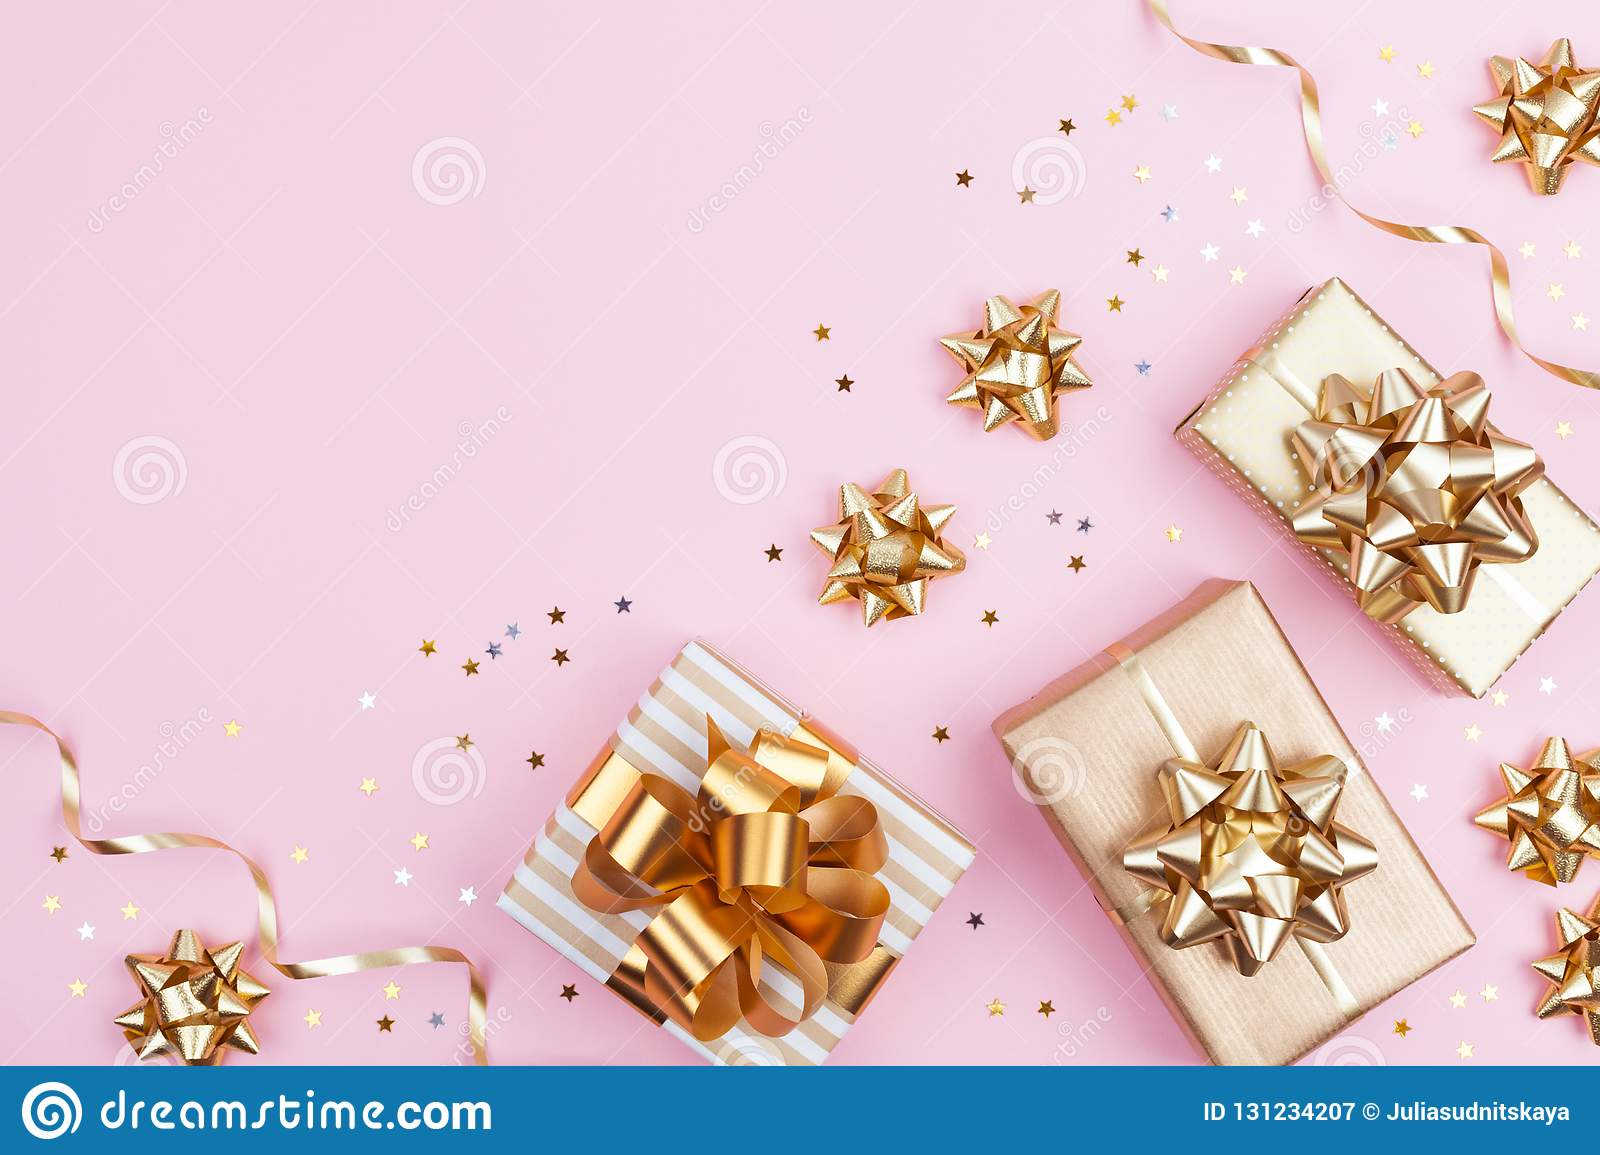 Fashion gifts or presents boxes with golden bows and star confetti on pink pastel background top view. Flat lay for Christmas